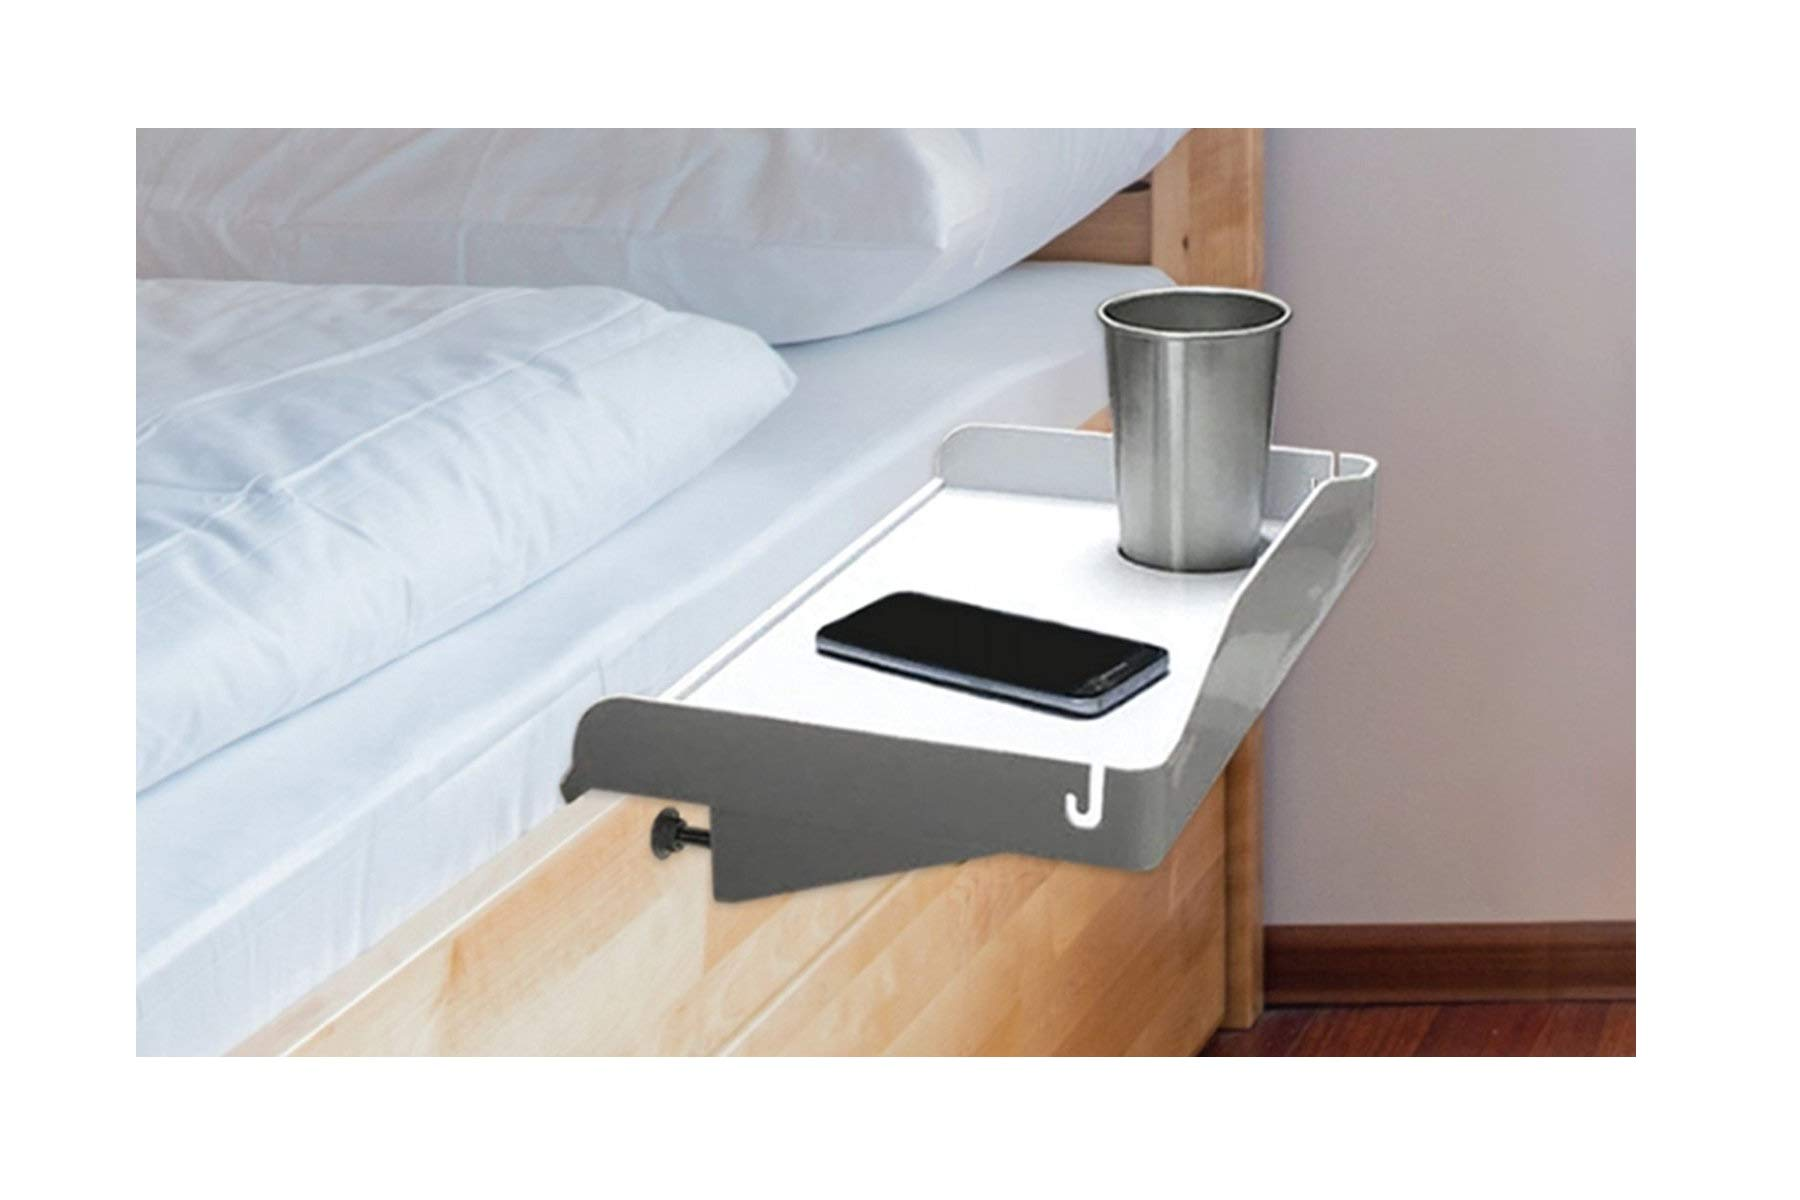 Bedside Tray To Use As Kids Nightstand Bunk Bed